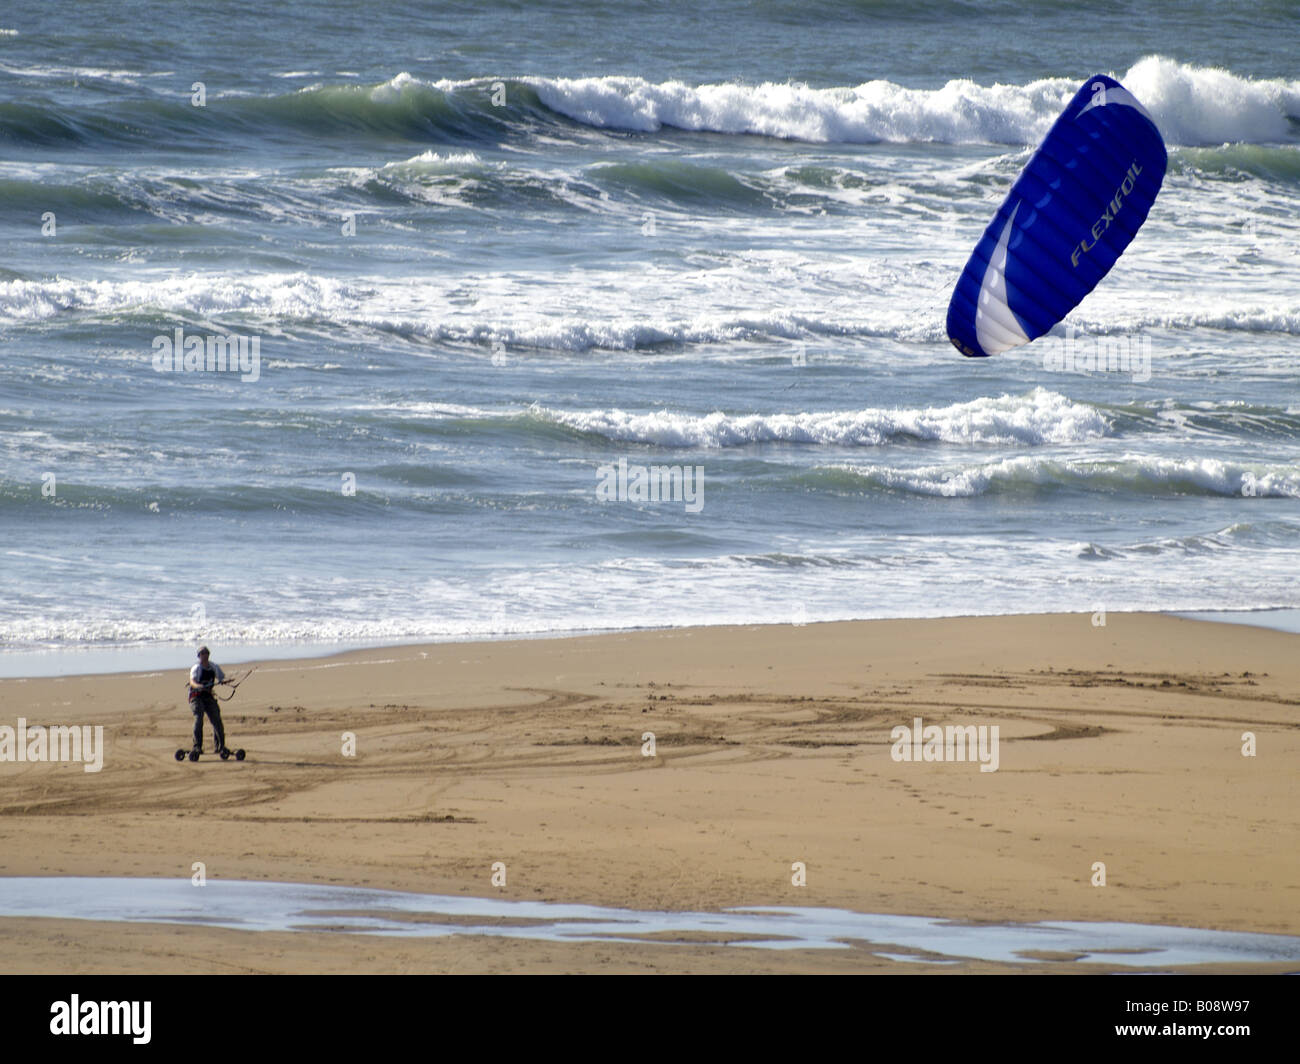 Powerkiter on the smooth sand of Crooklets Beach, Bude, Cornwall, UK - Stock Image